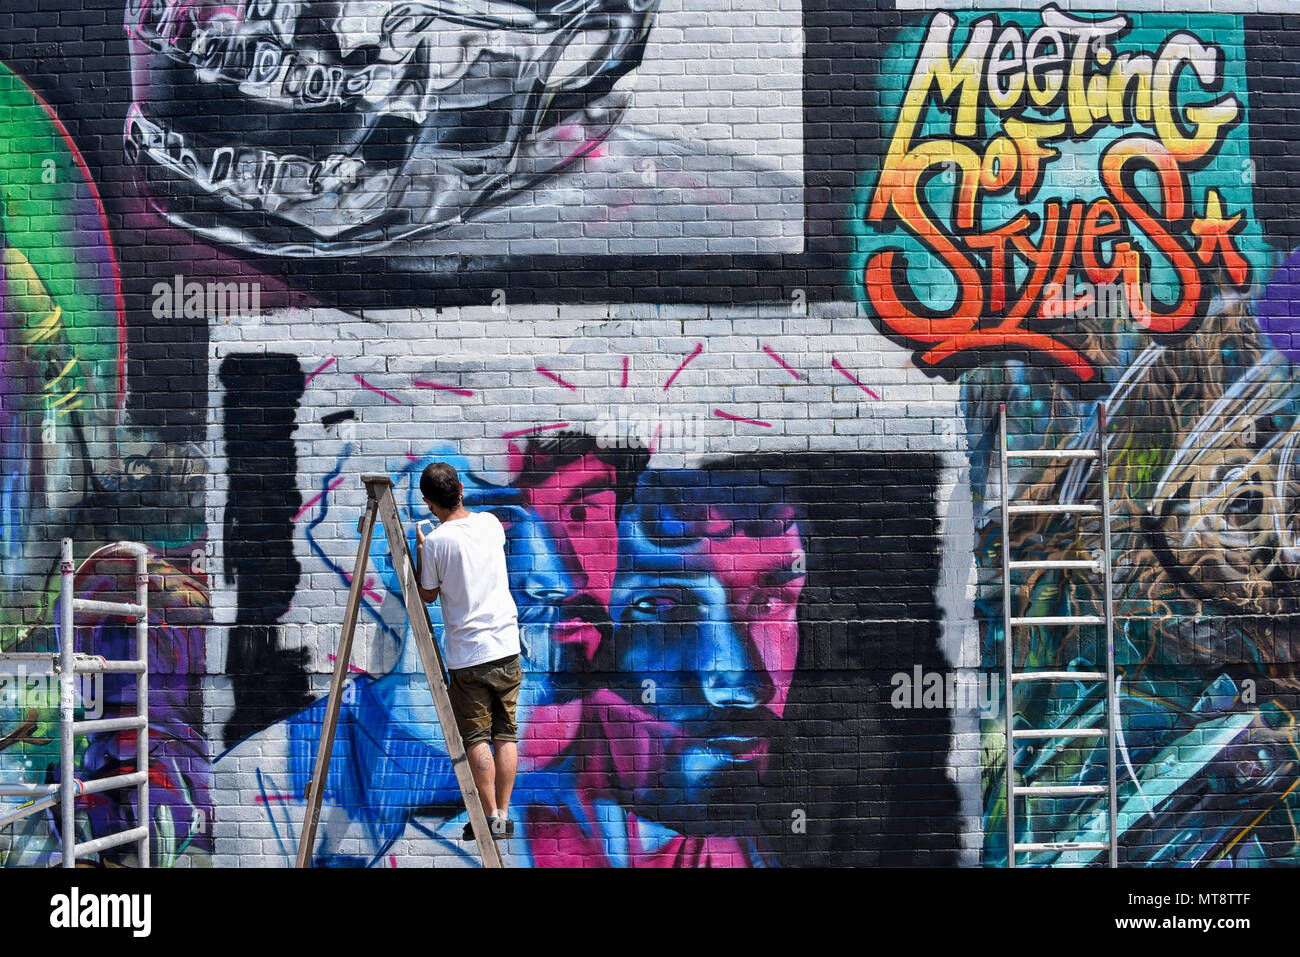 28 may 2018 core246 a street artist at work